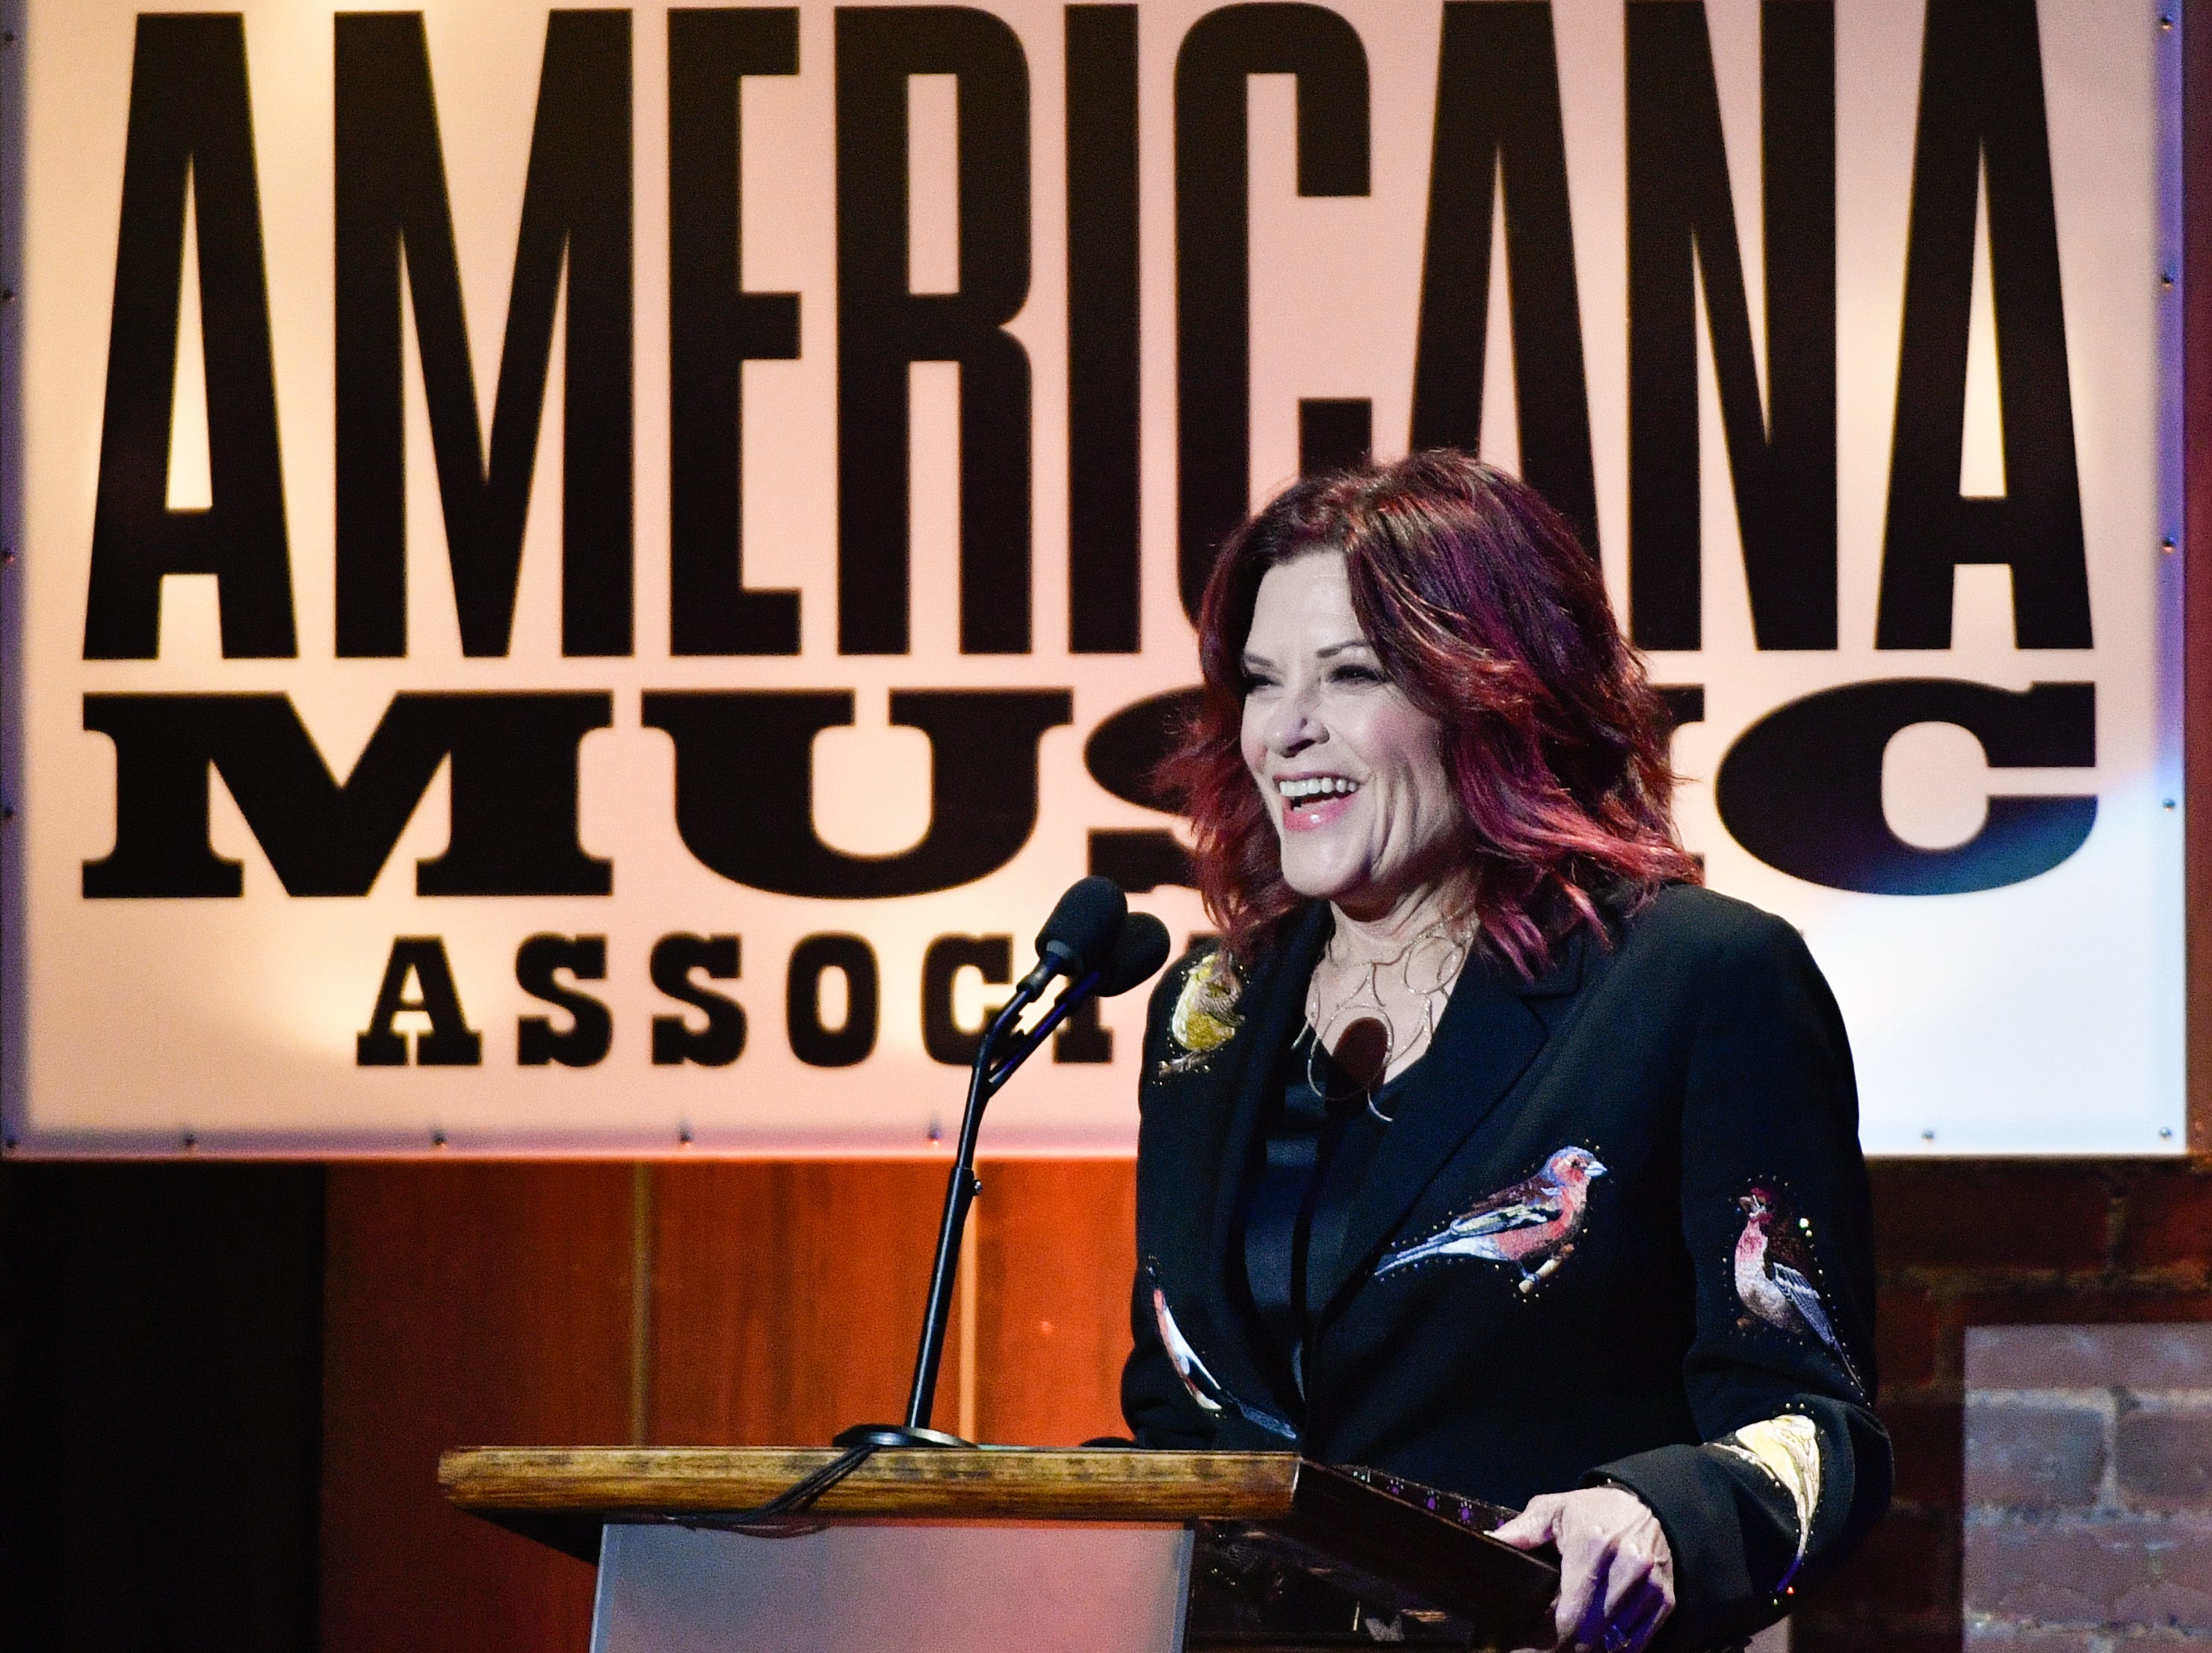 Rosanne Cash accepts the Freedom of Speech award during the 2018 Americana Honors and Awards show at the Ryman Auditorium in Nashville, Tenn., Wednesday, Sept. 12, 2018.